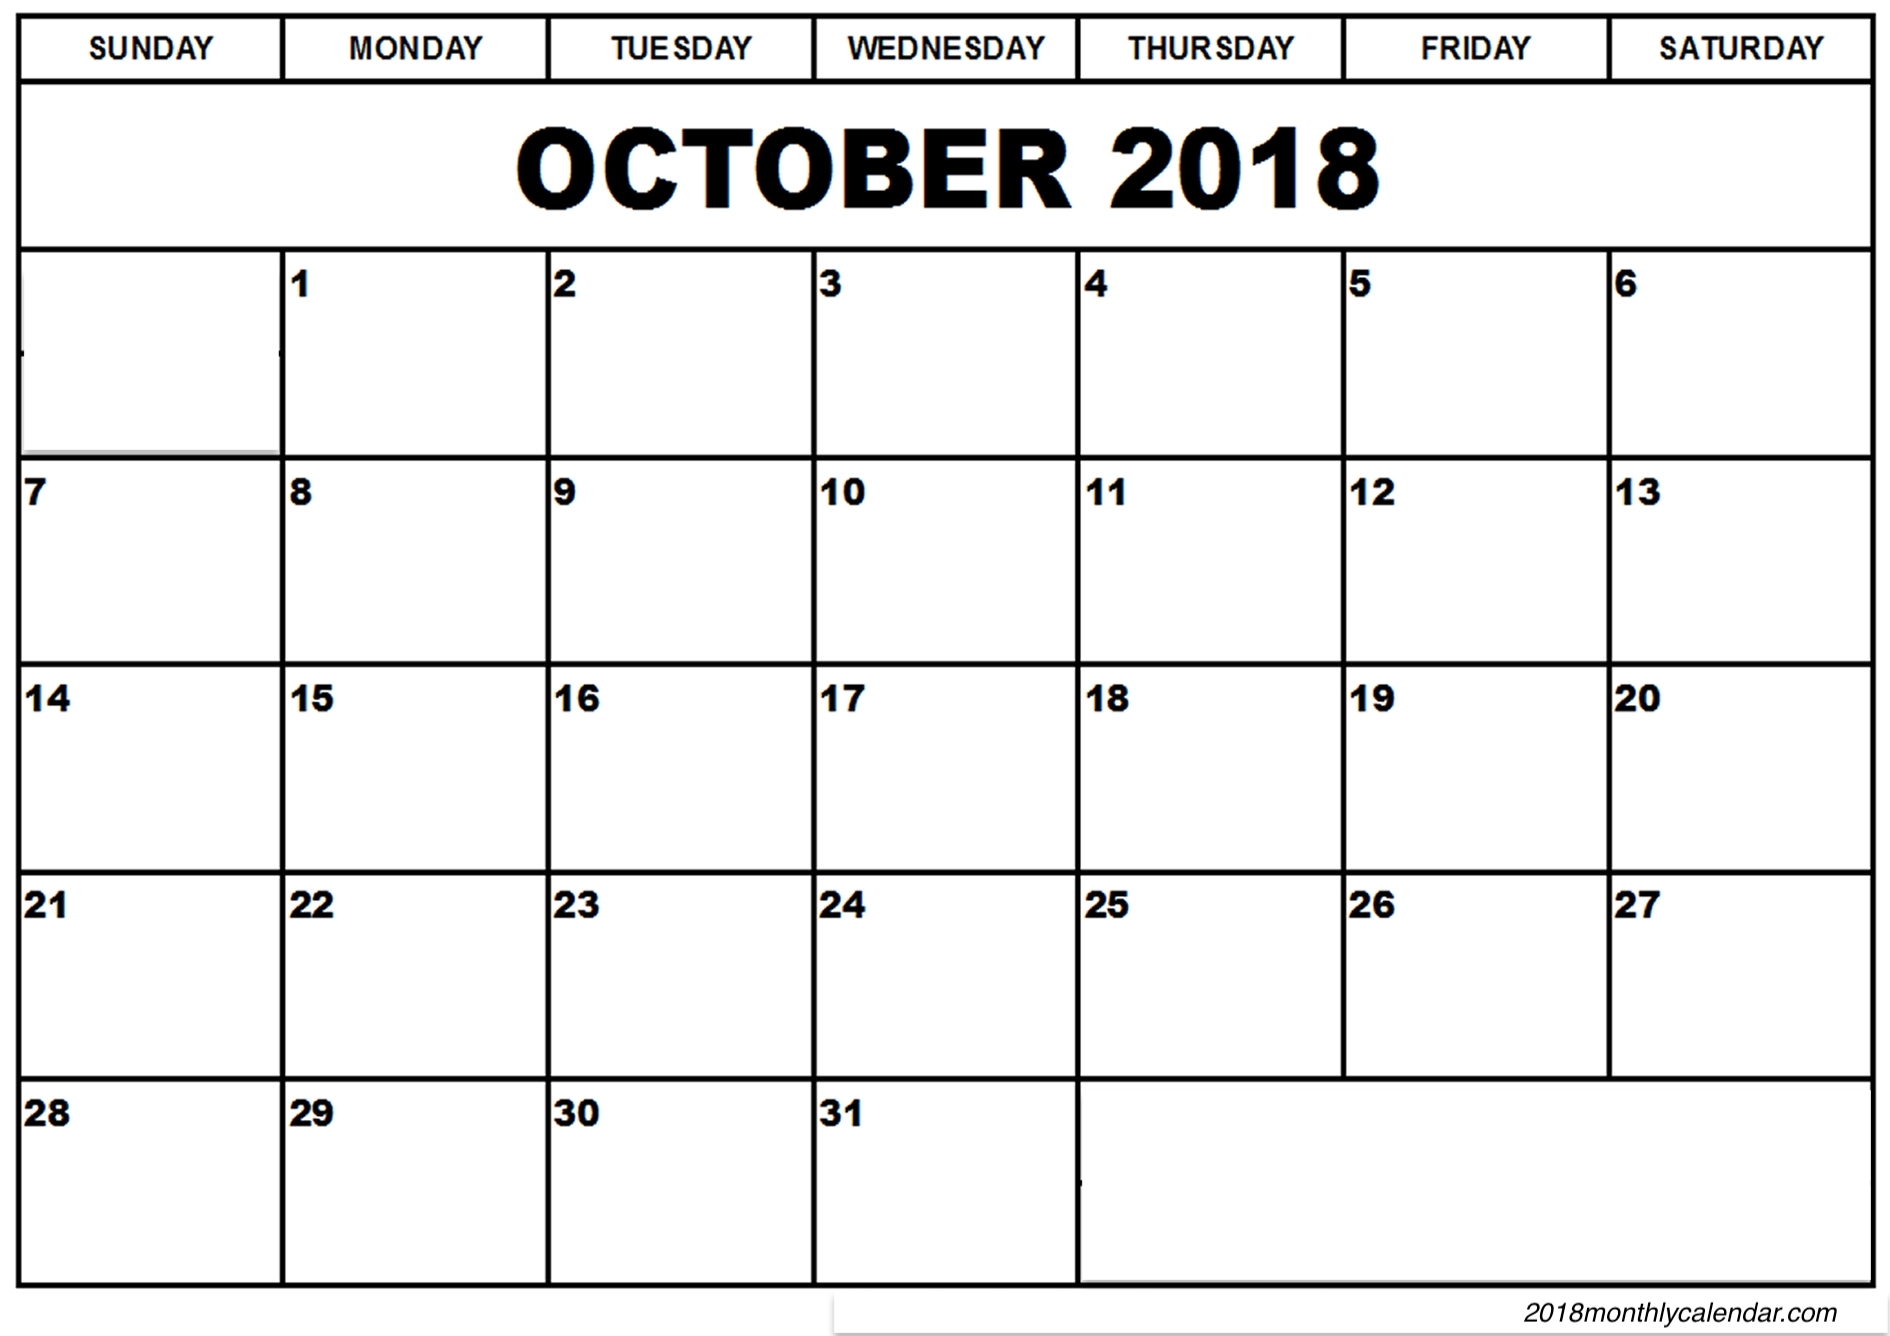 October 2018 Calendar Document in Excel Format